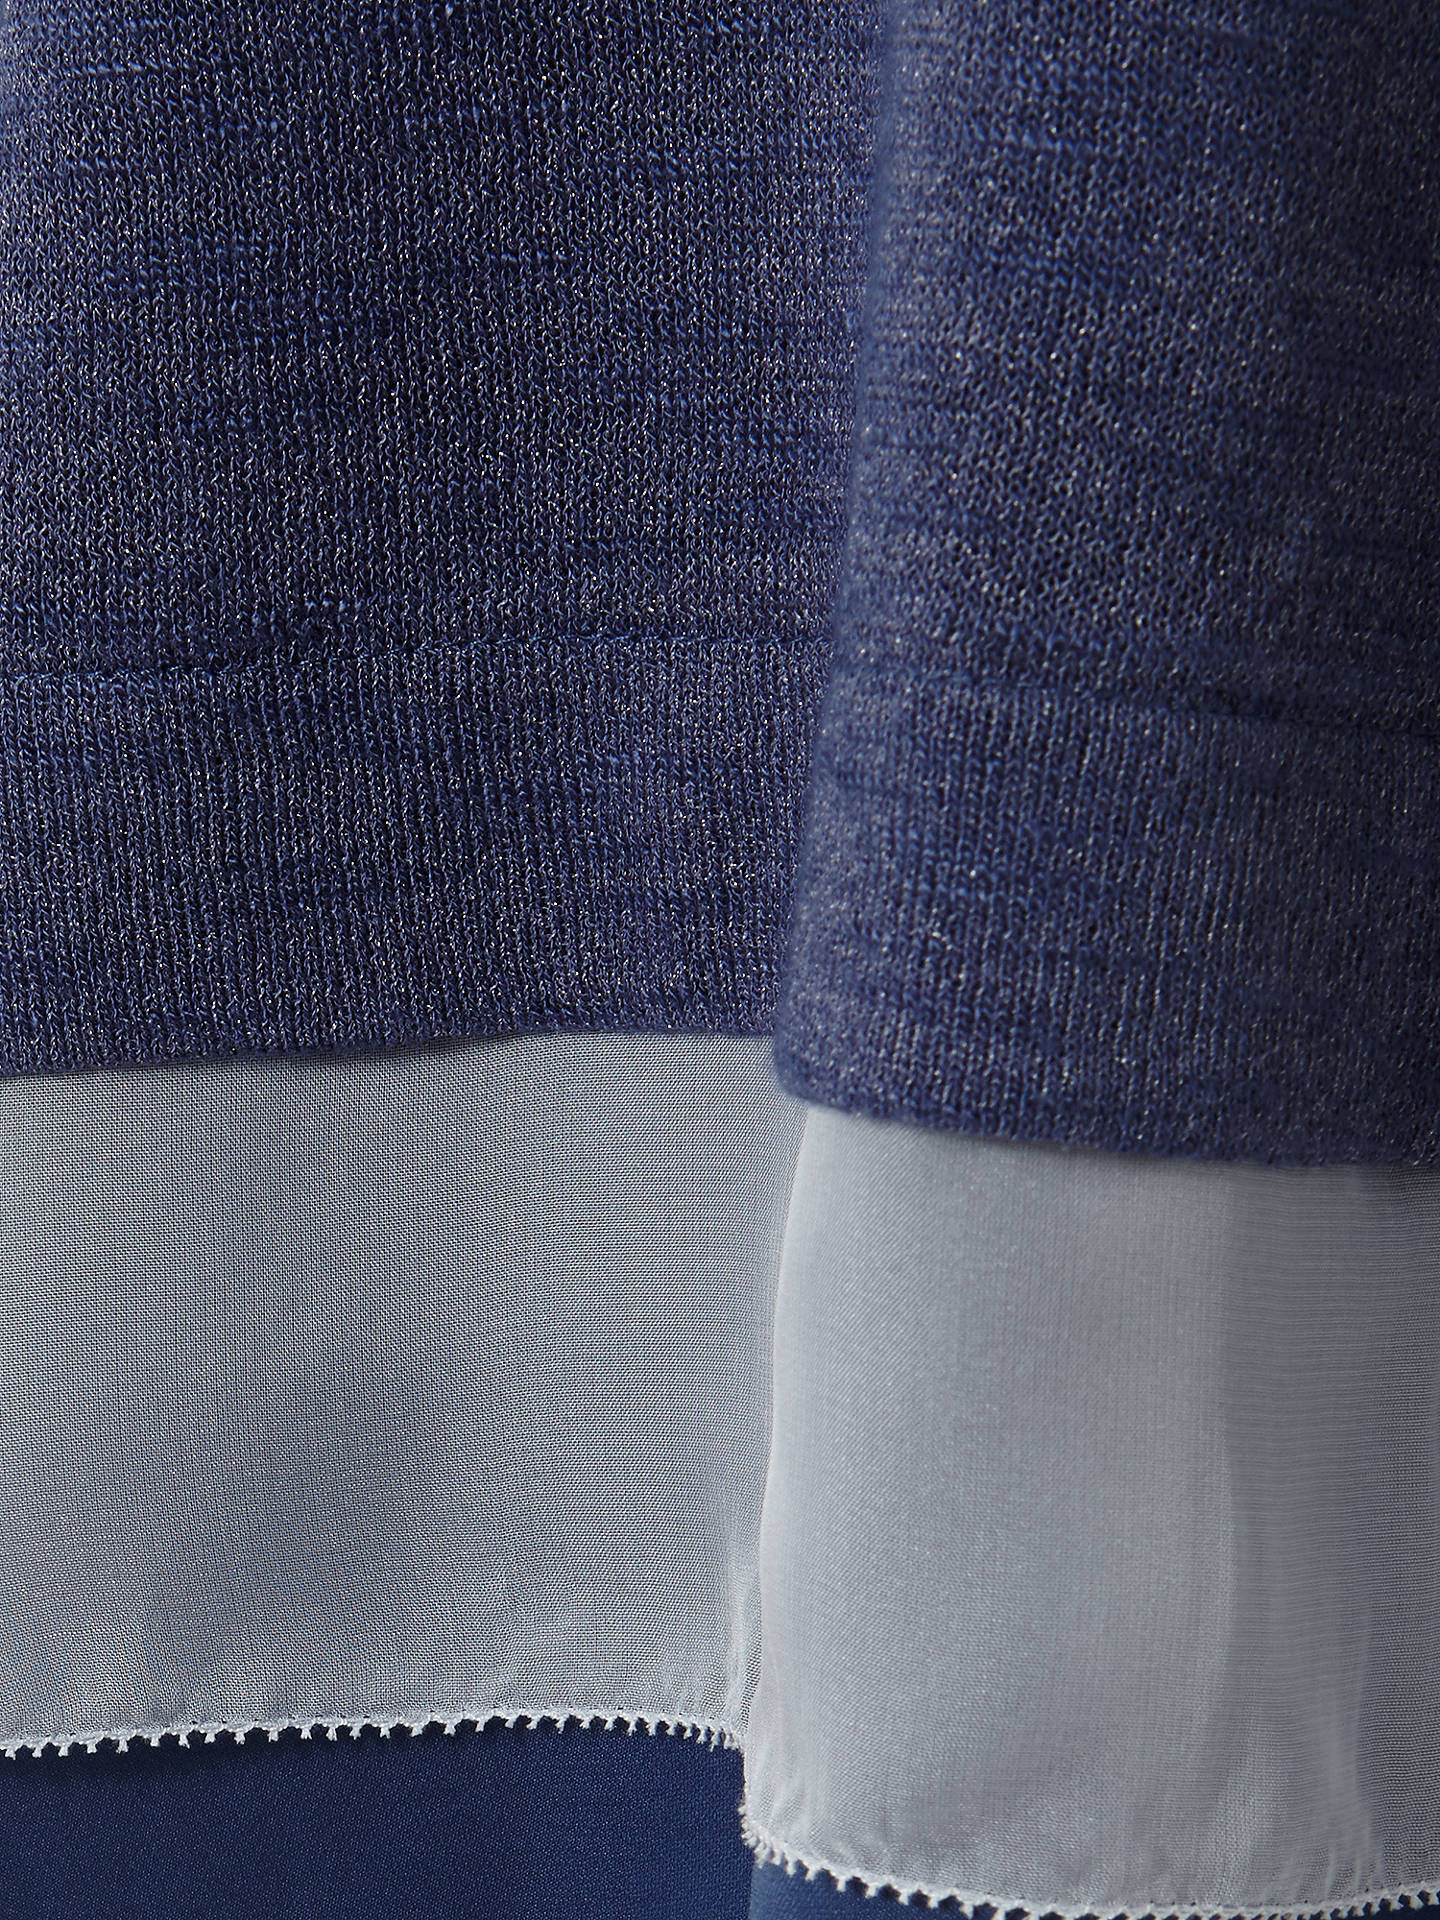 BuyStudio 8 Mandy Top, Blue, Blue, 12 Online at johnlewis.com